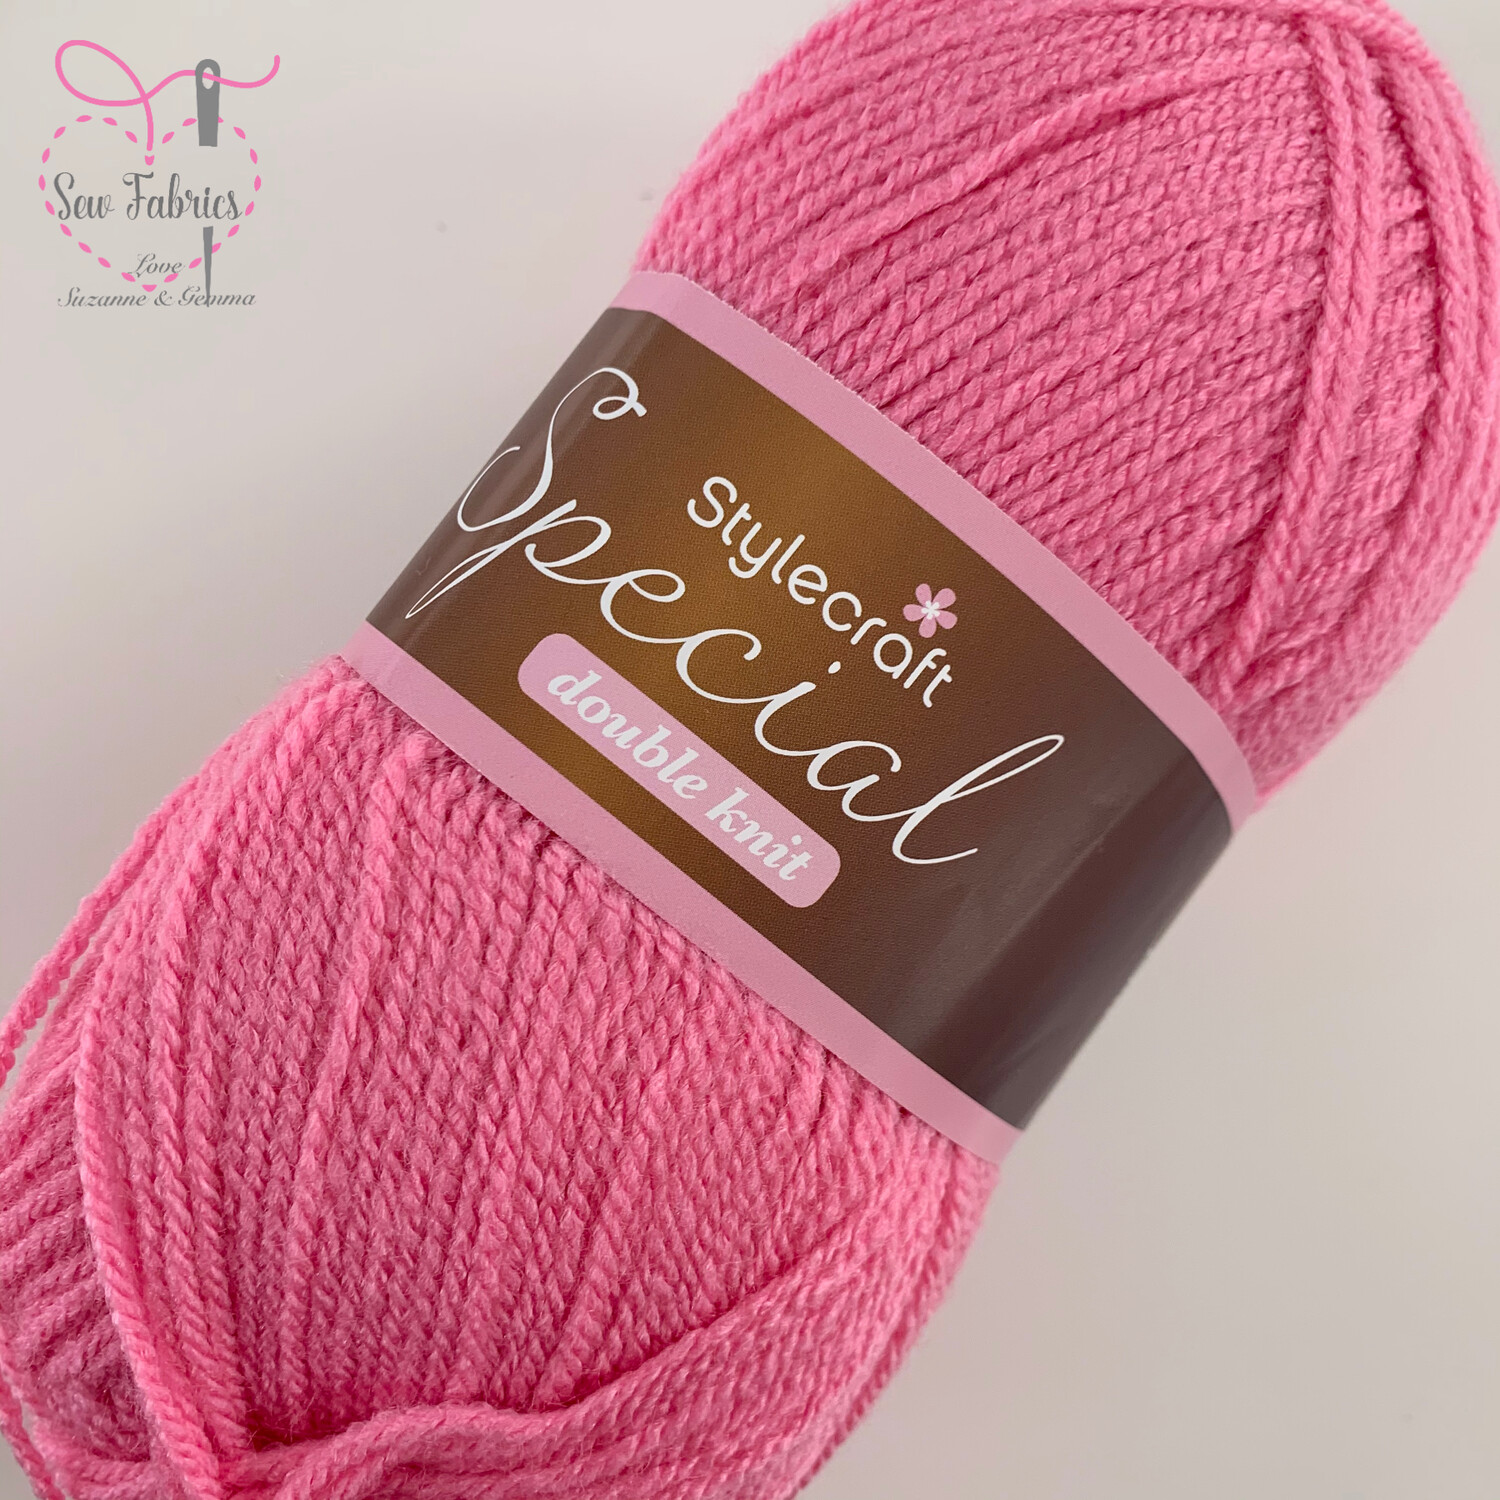 Stylecraft Special DK 100% Premium Acrylic Wool - Raspberry  Buy More Than 1 Ball & Get 30% Off With Code STYLE30